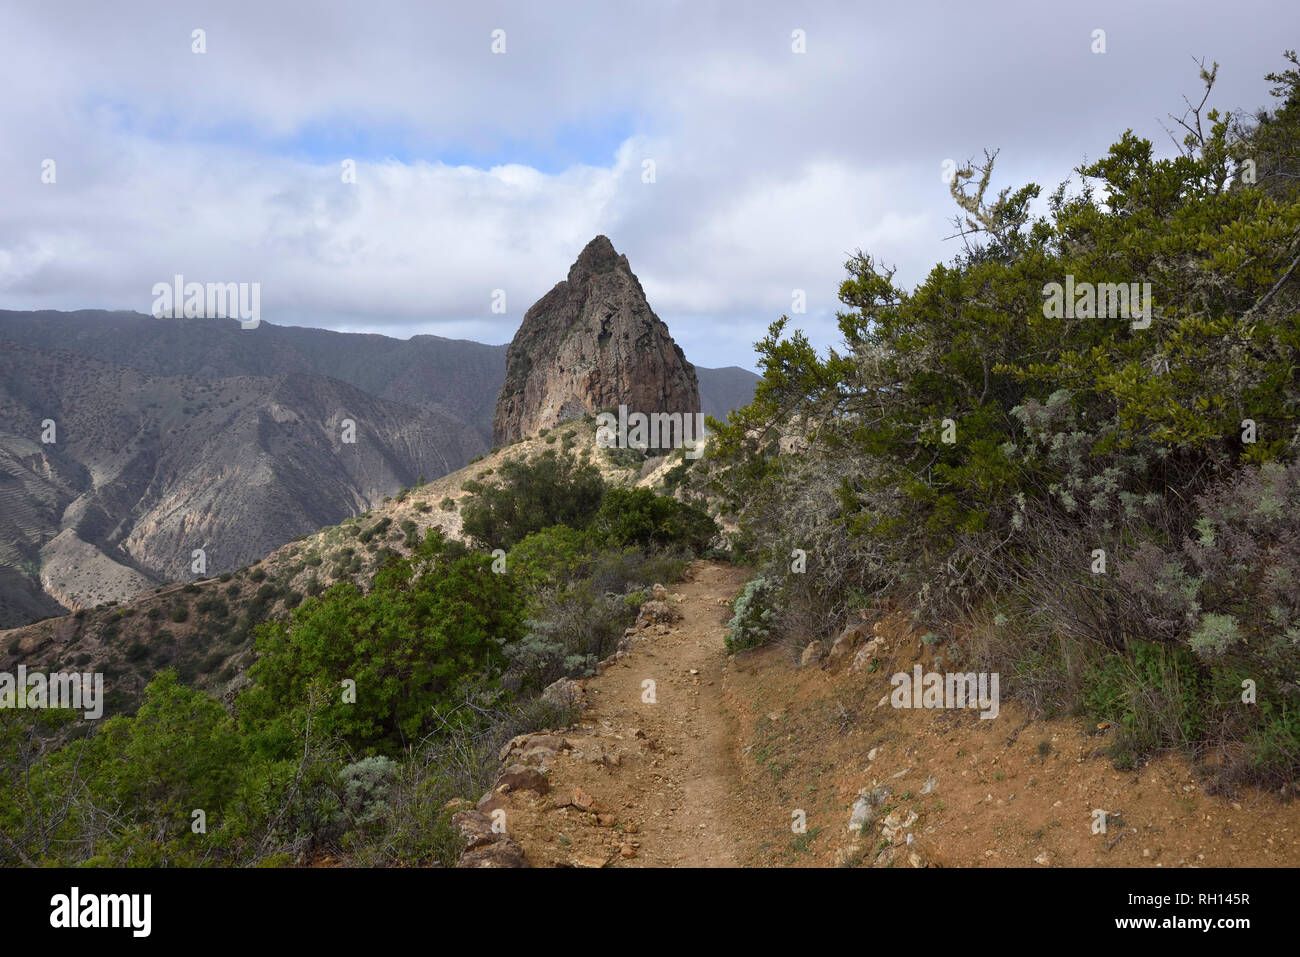 hiking trail to Roque Cano, La Gomera, Canary Islands, Spain - Stock Image